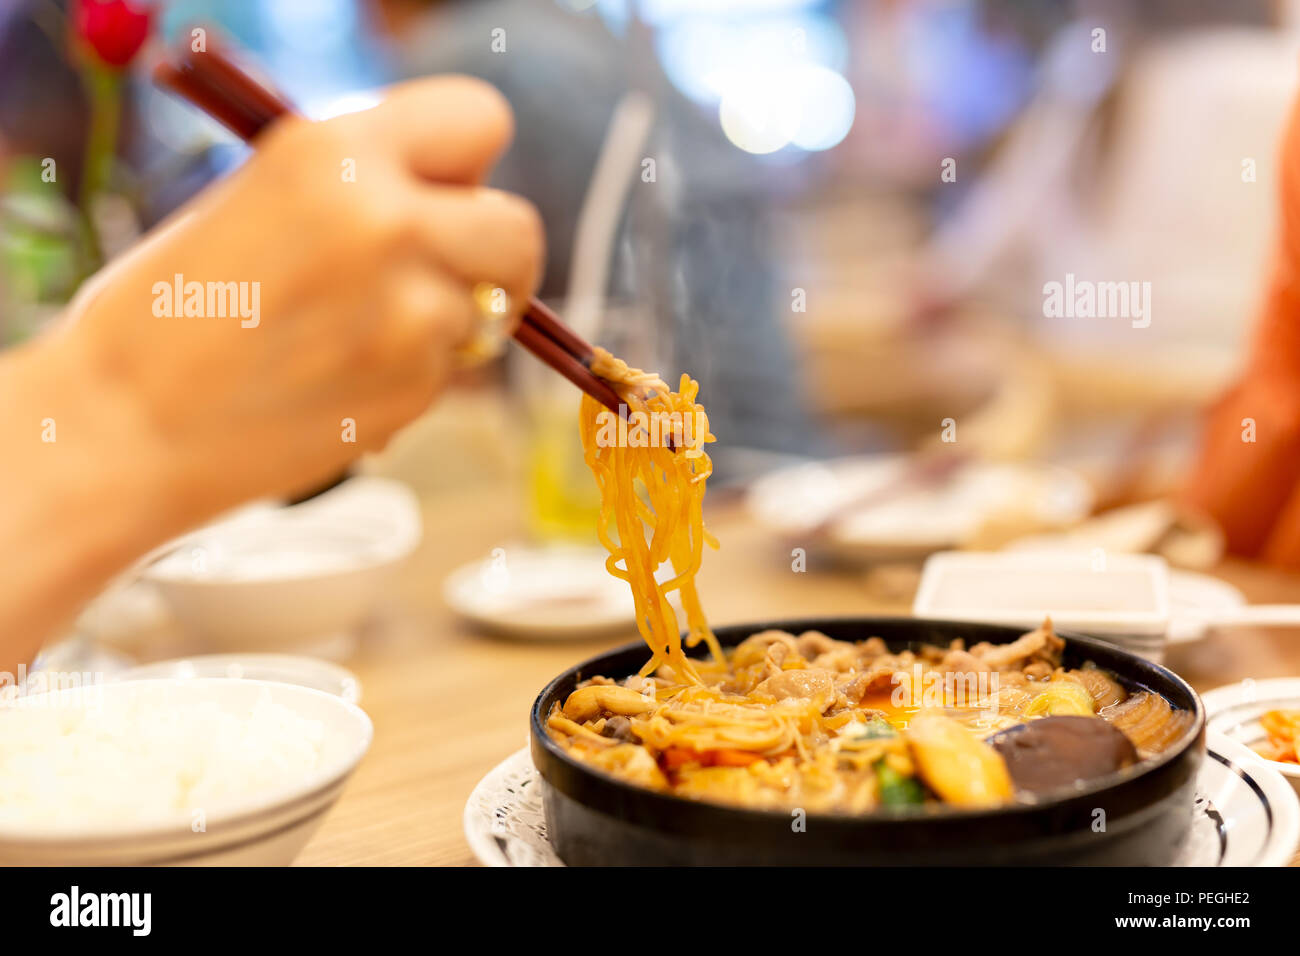 Hand with chopsticks eating Japanese udon noodles. - Stock Image